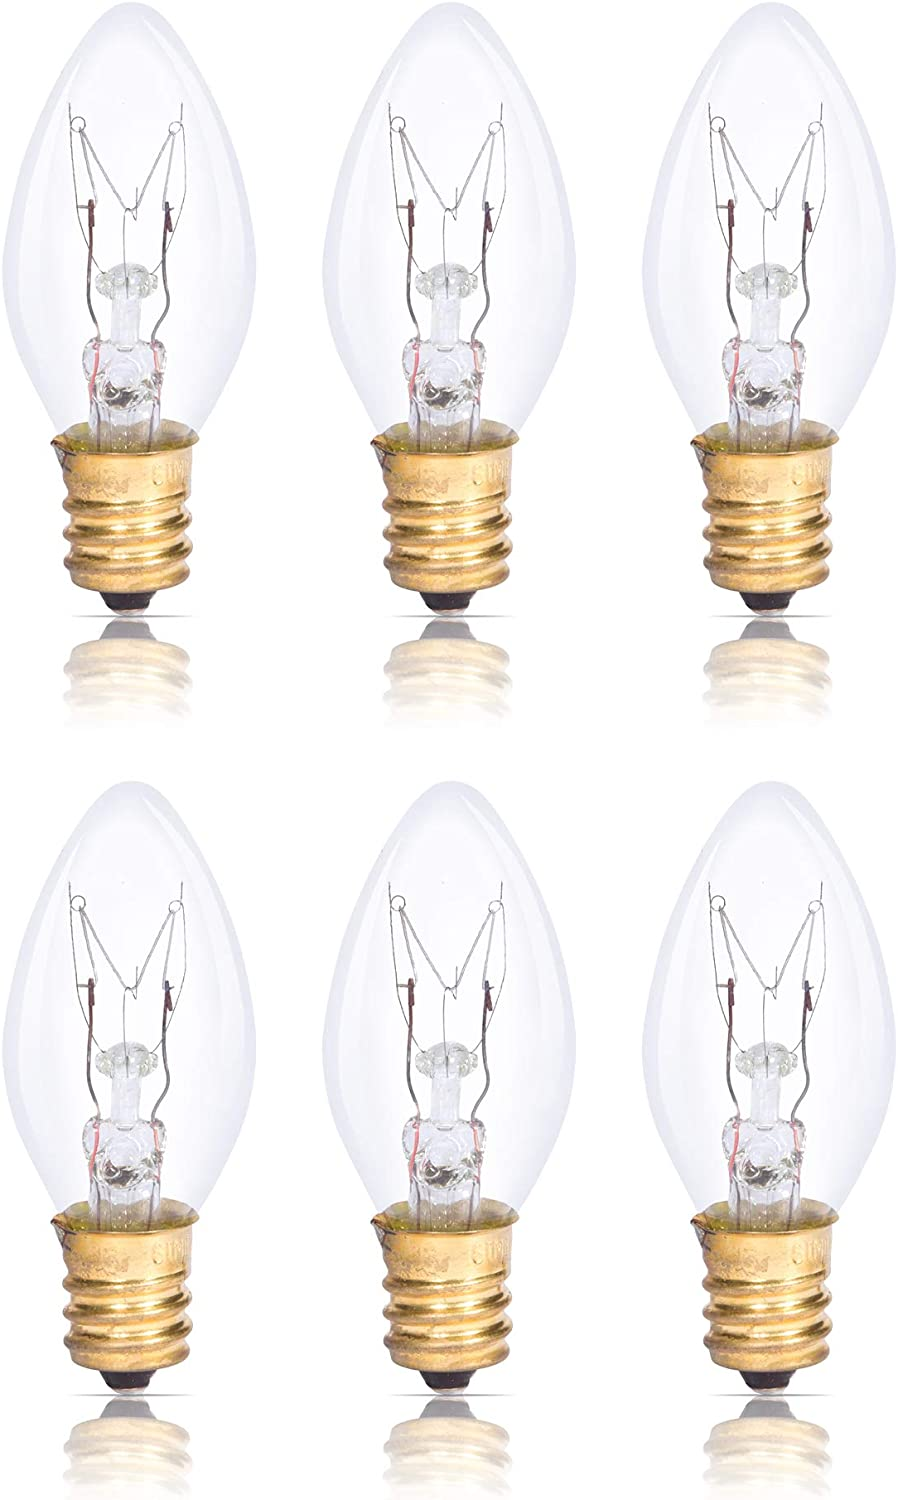 Simba Lighting C7 15W Replacement Bulb (6 Pack) for Himalayan Salt Rock and Basket, Plug in Scentsy Wax Warmer, Night Light, Clear Candle Shape, 120V, E12 Candelabra Base, Dimmable, 2700K Warm White